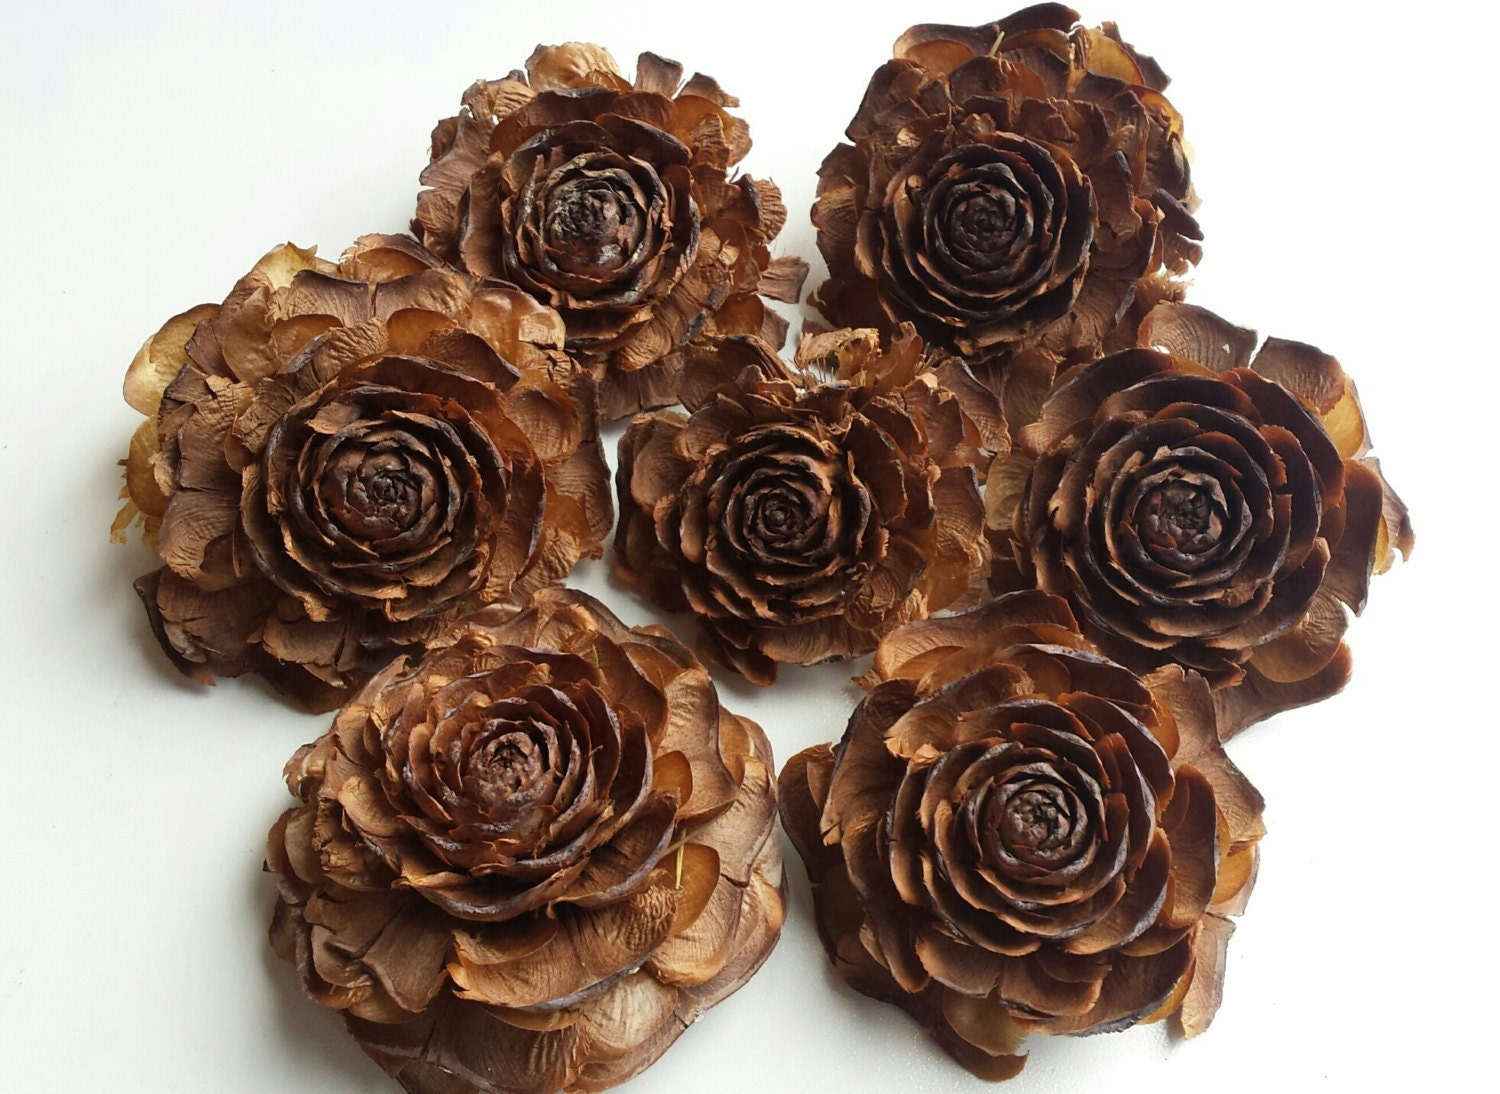 Cedar rose pine cones flower shaped pine cones pine cones - Pliage serviette pomme de pin ...